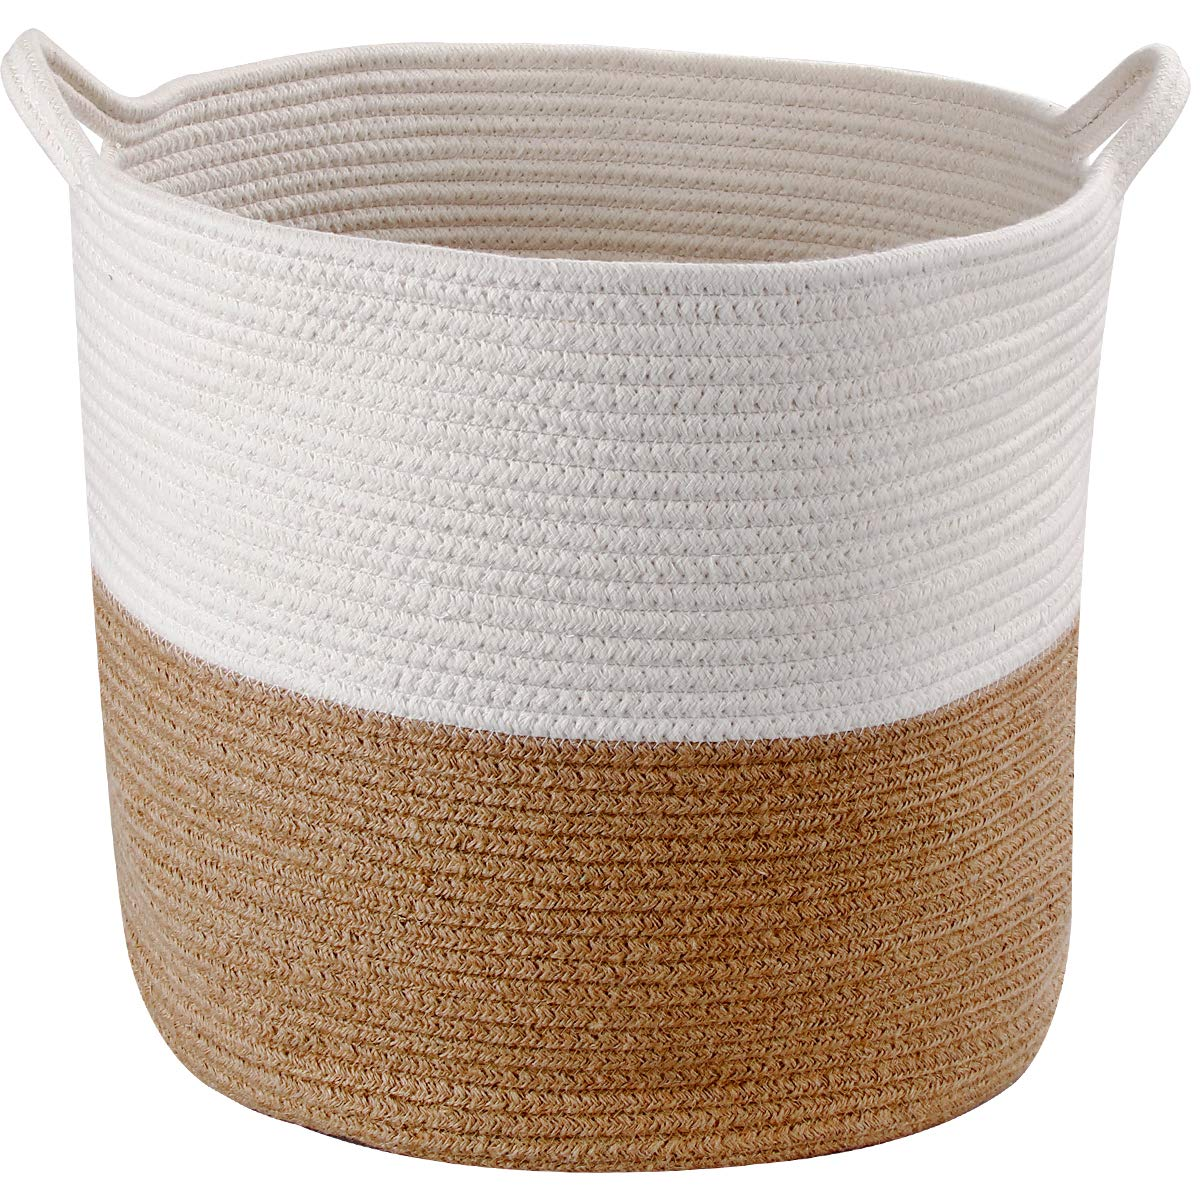 Storage Cotton Basket Extra Large 17''x 14'' with Handles, Baby Nursery Storage Basket, Cotton Rope Decorative Bin Organizer for Laundry, Toys, Towels, Blankets, Books in Living Room, Bathroom